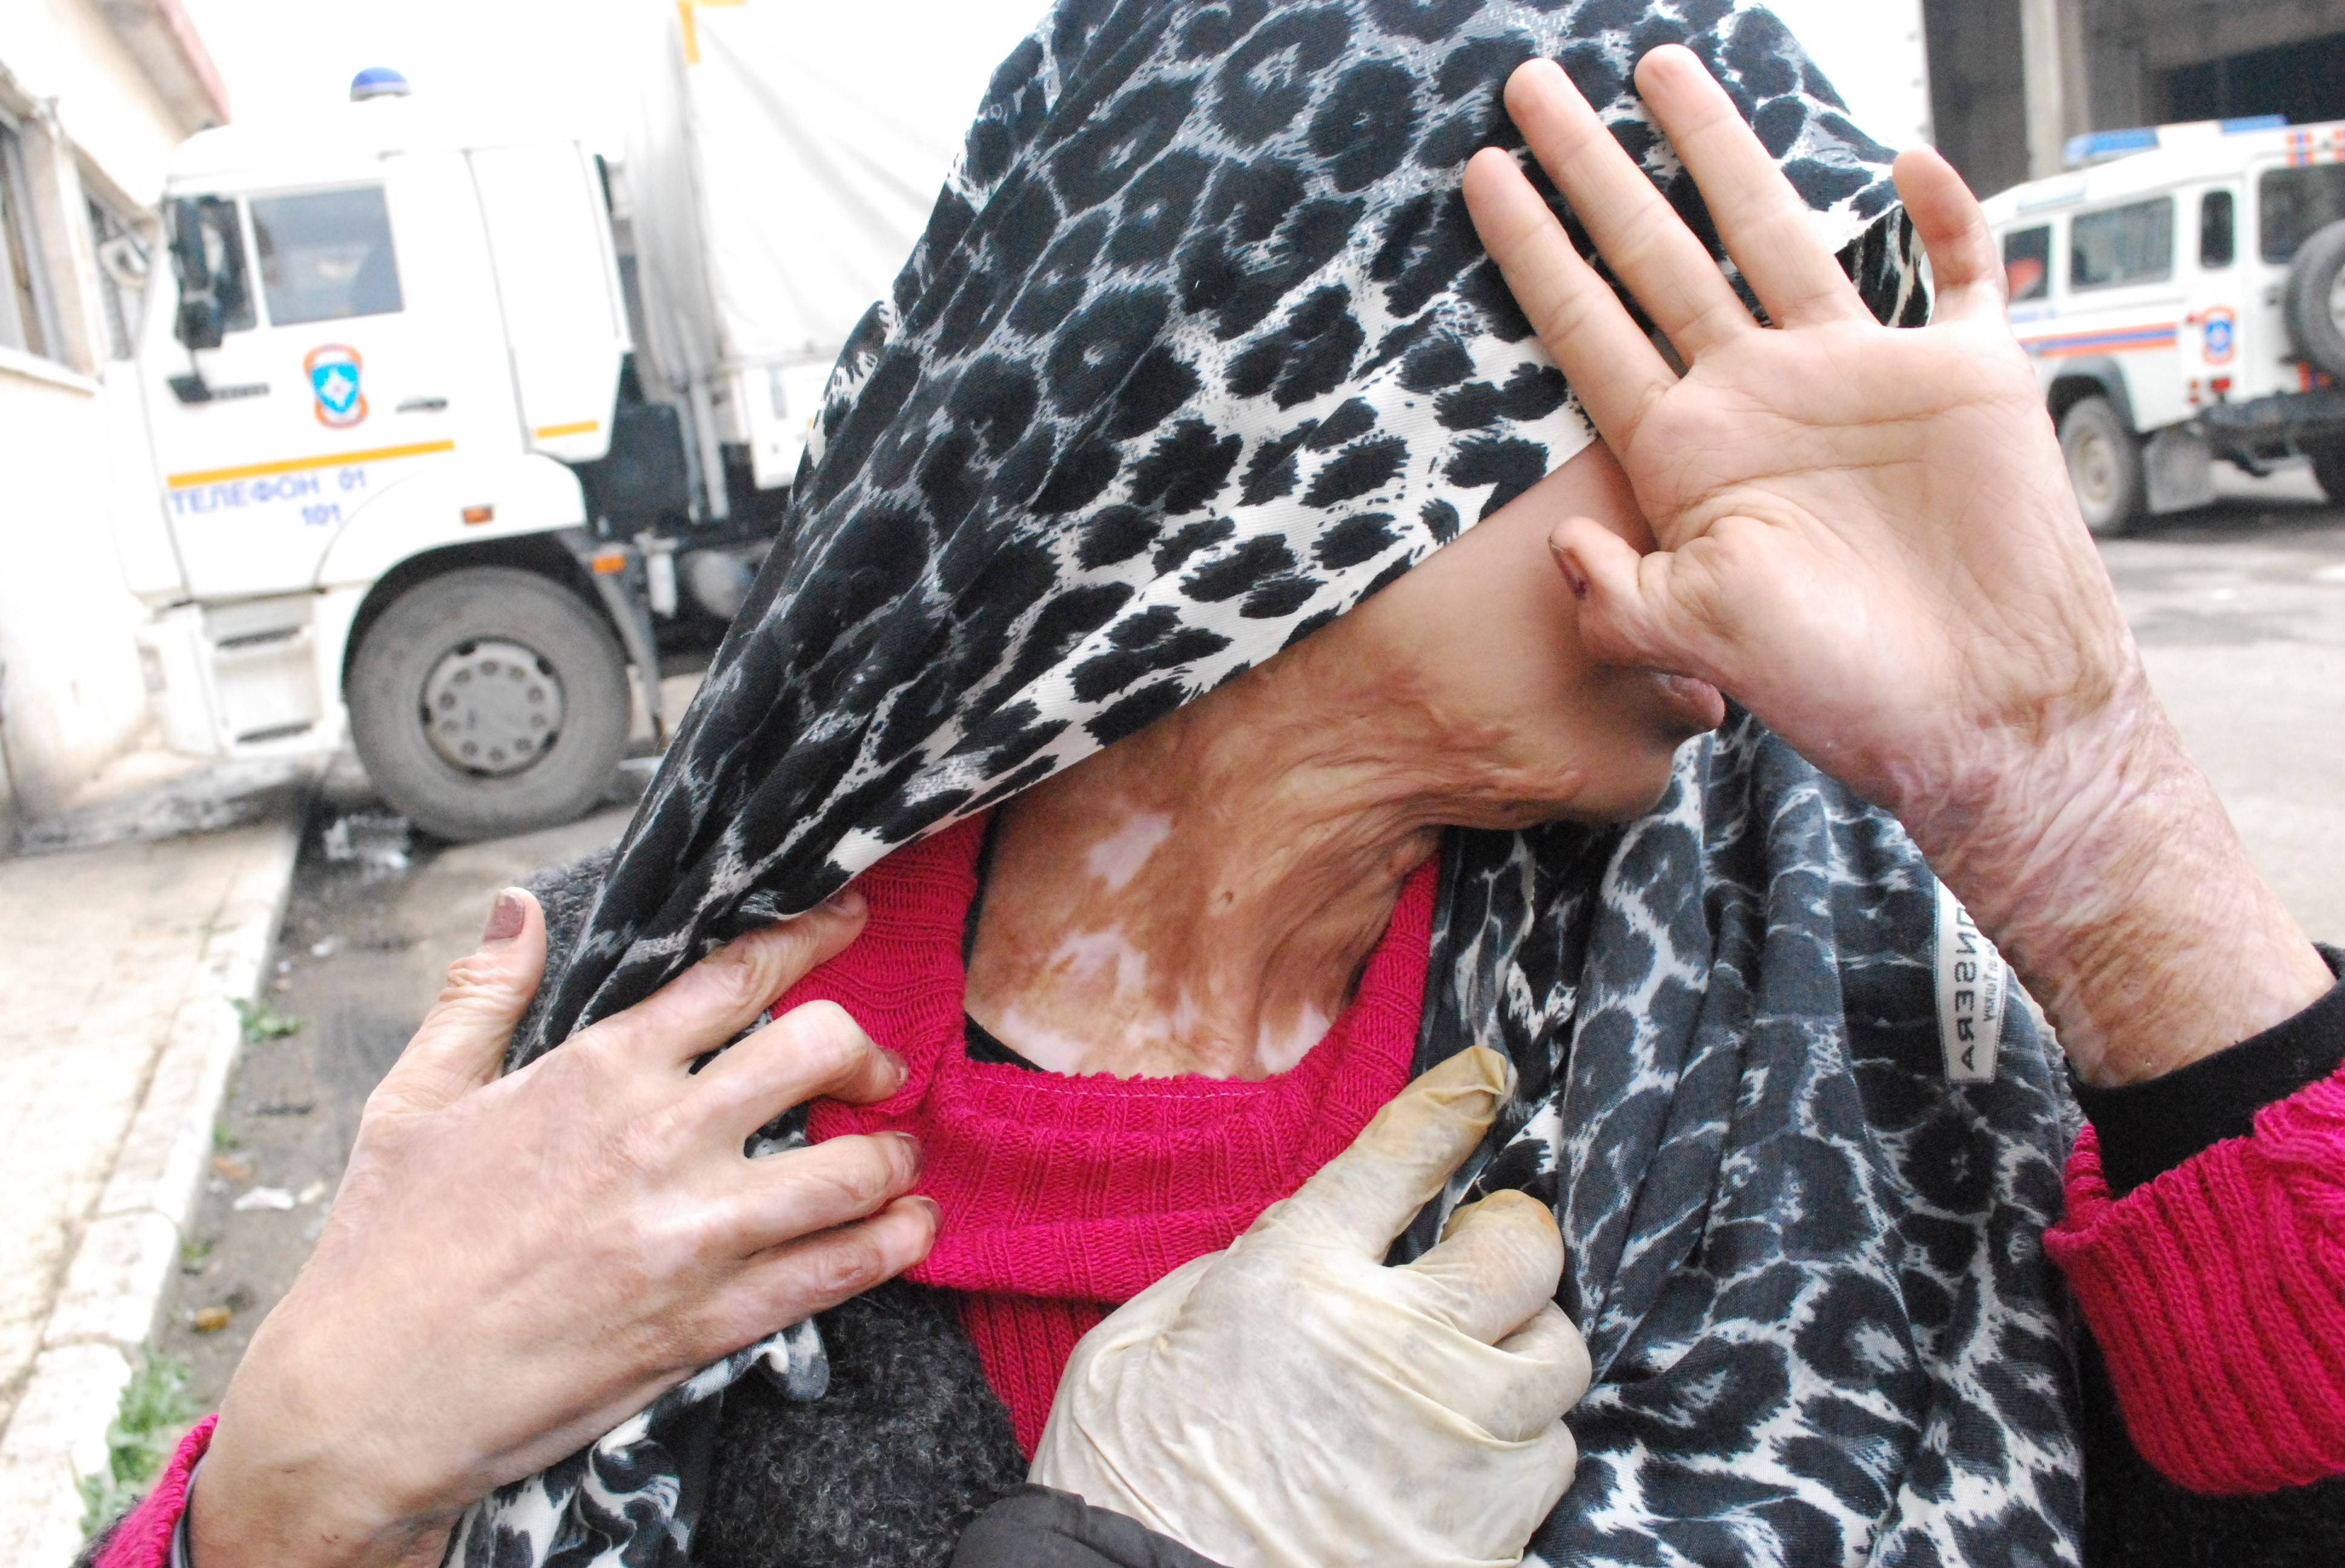 Citizen of Aleppo showing her untreated burns